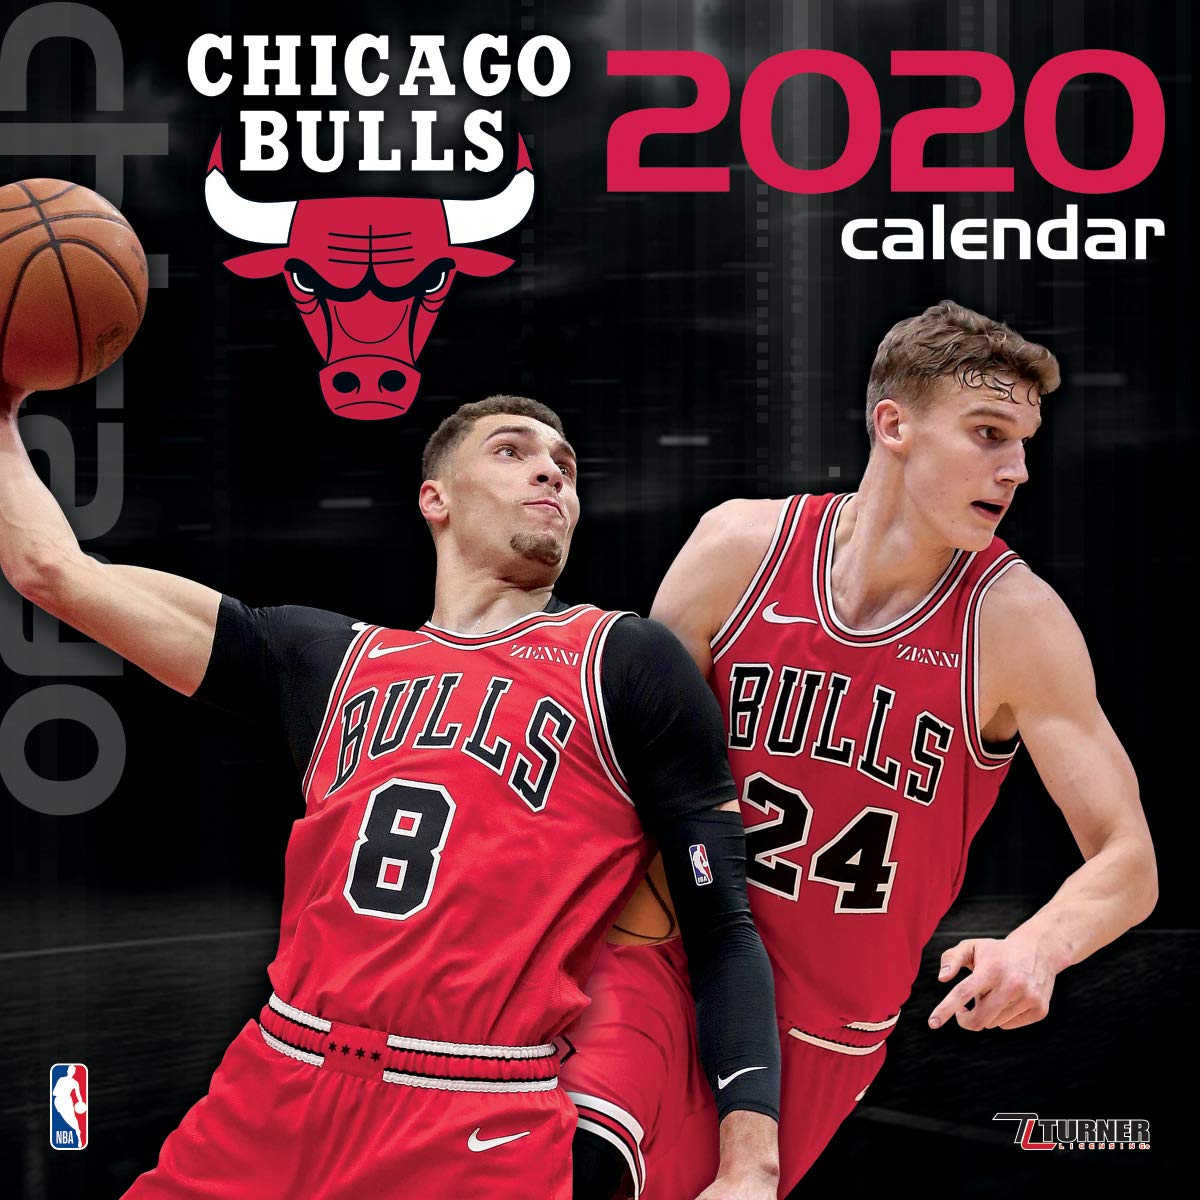 Chicago Bulls Buy Chicago Bulls 2020 Calendar Book Online at Low Prices in India | Chicago  Bulls 2020 Calendar Reviews & Ratings - Amazon.in